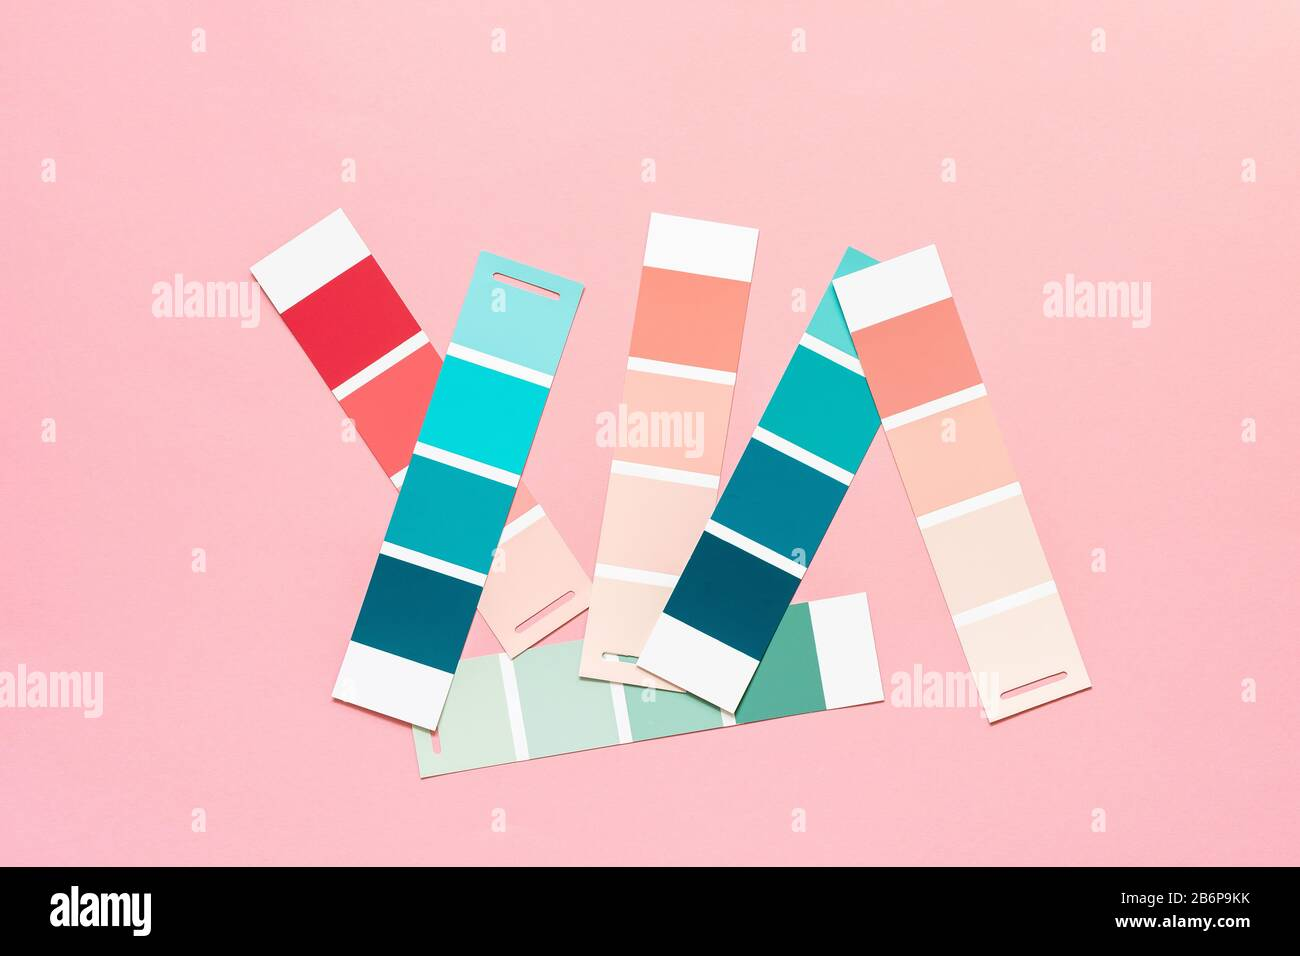 Selection Of Palette For Painting Sample Color Catalog On A Pink Background Different Shades Of Pink And Green Colors Stock Photo Alamy